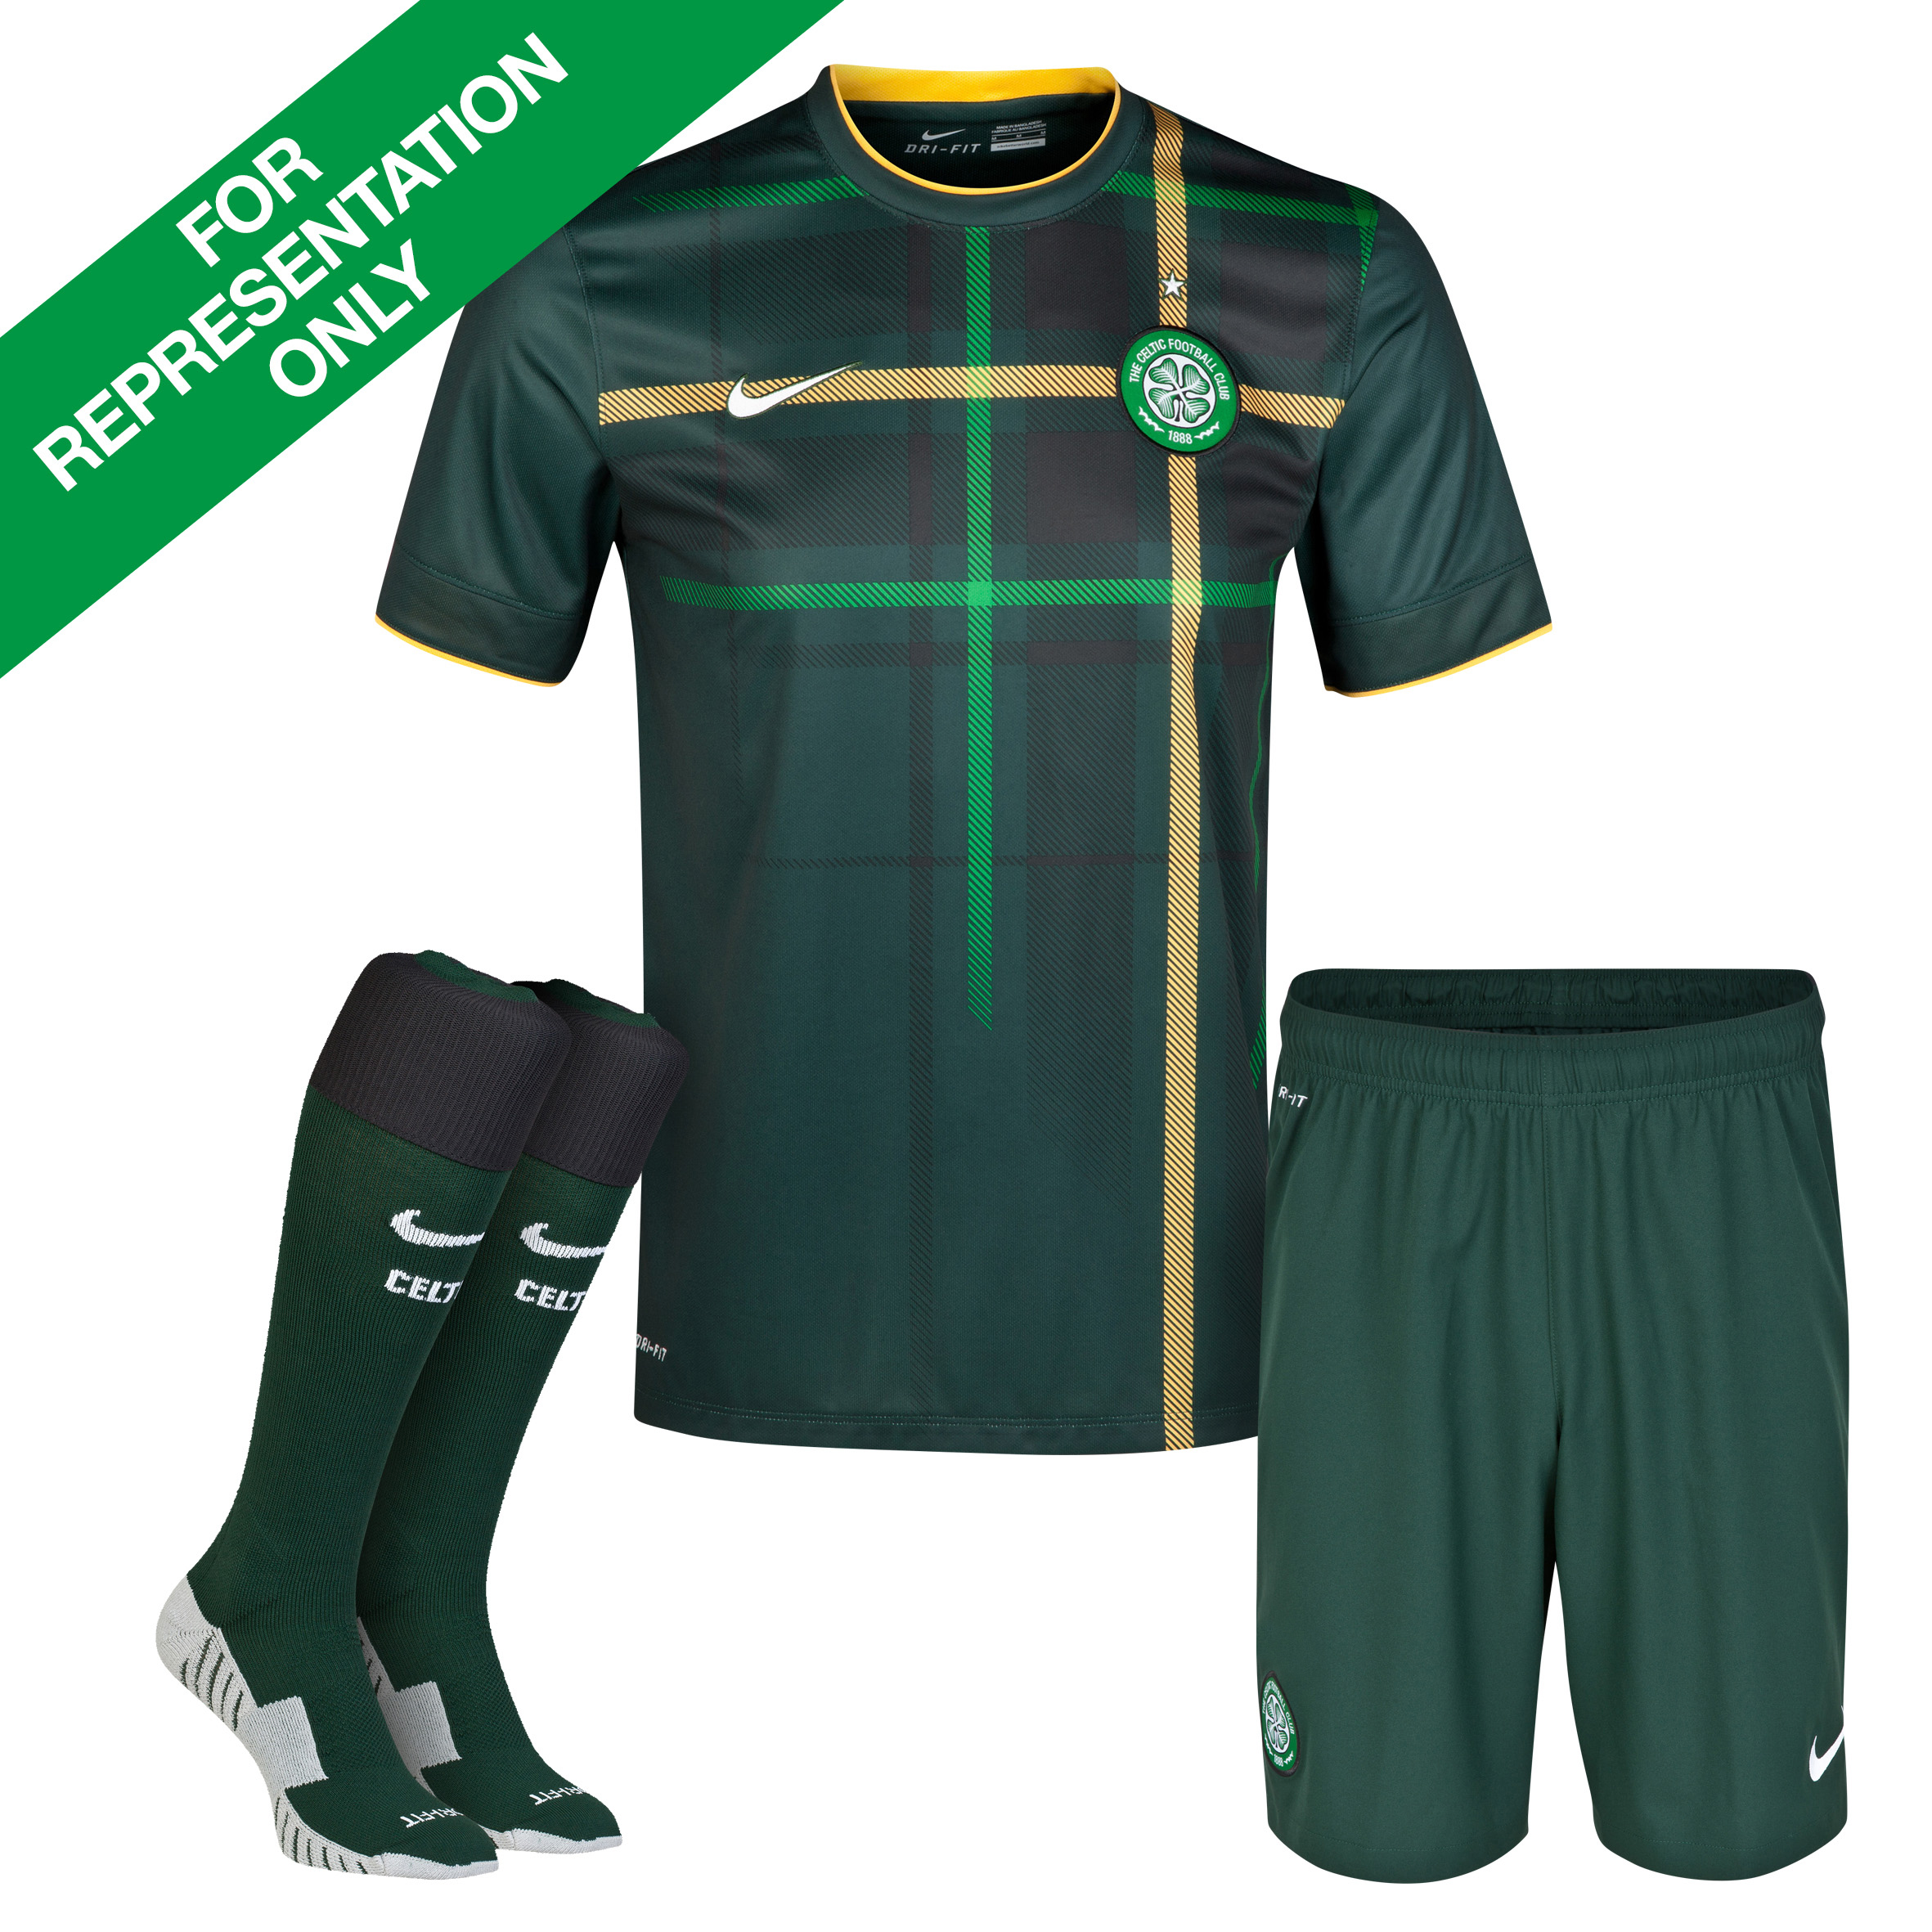 Celtic Away Kit 2014/15 - Little Boys Green